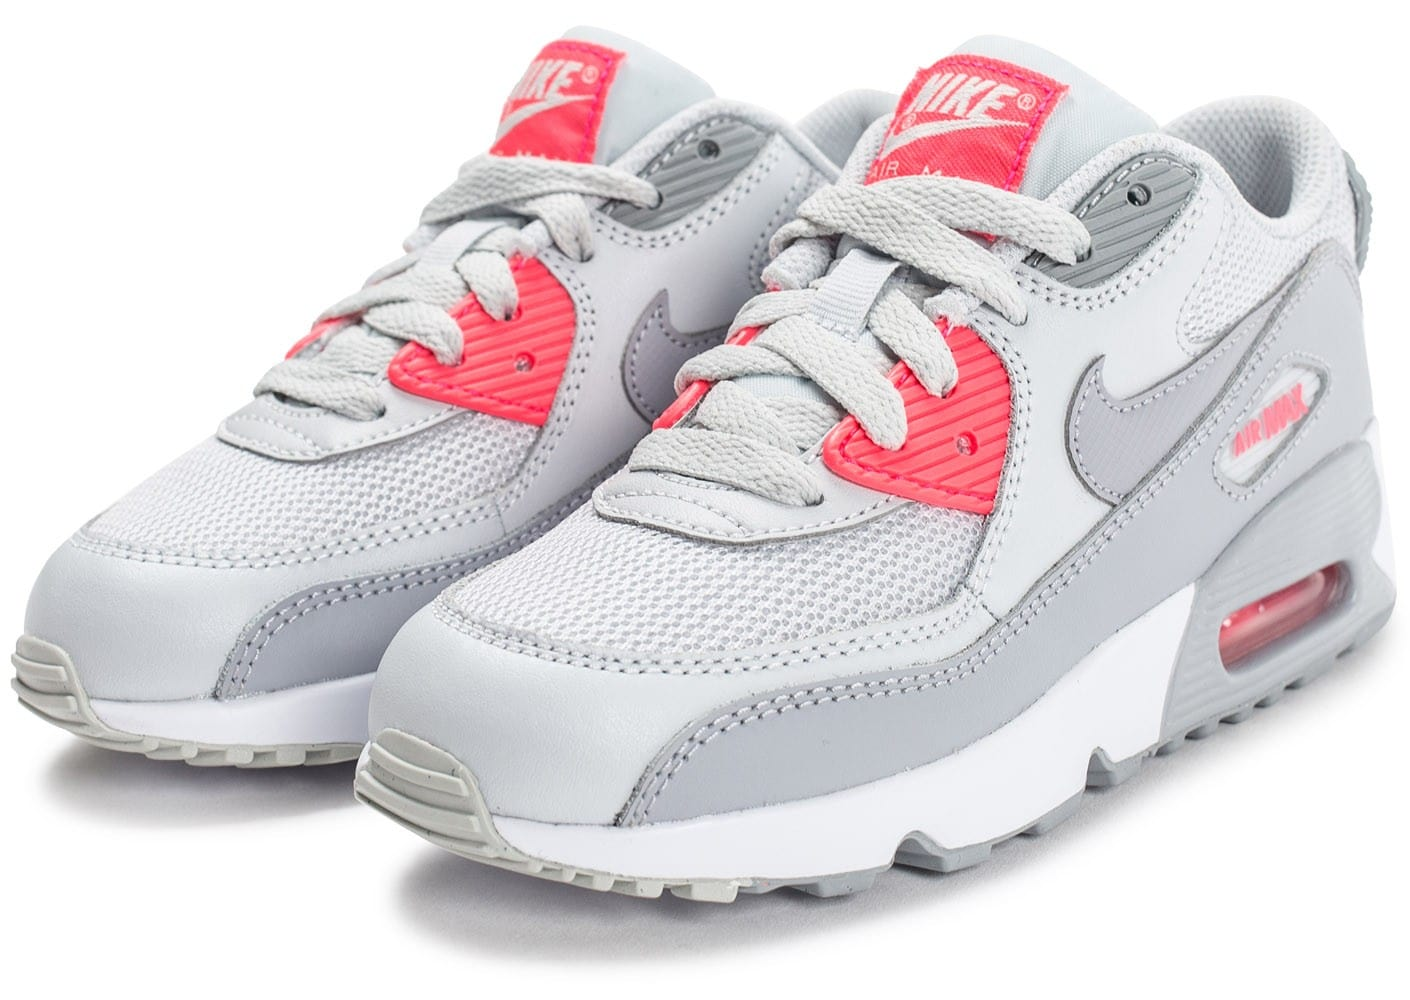 nike air max 90 mesh enfant grise et rose chaussures chaussures chausport. Black Bedroom Furniture Sets. Home Design Ideas